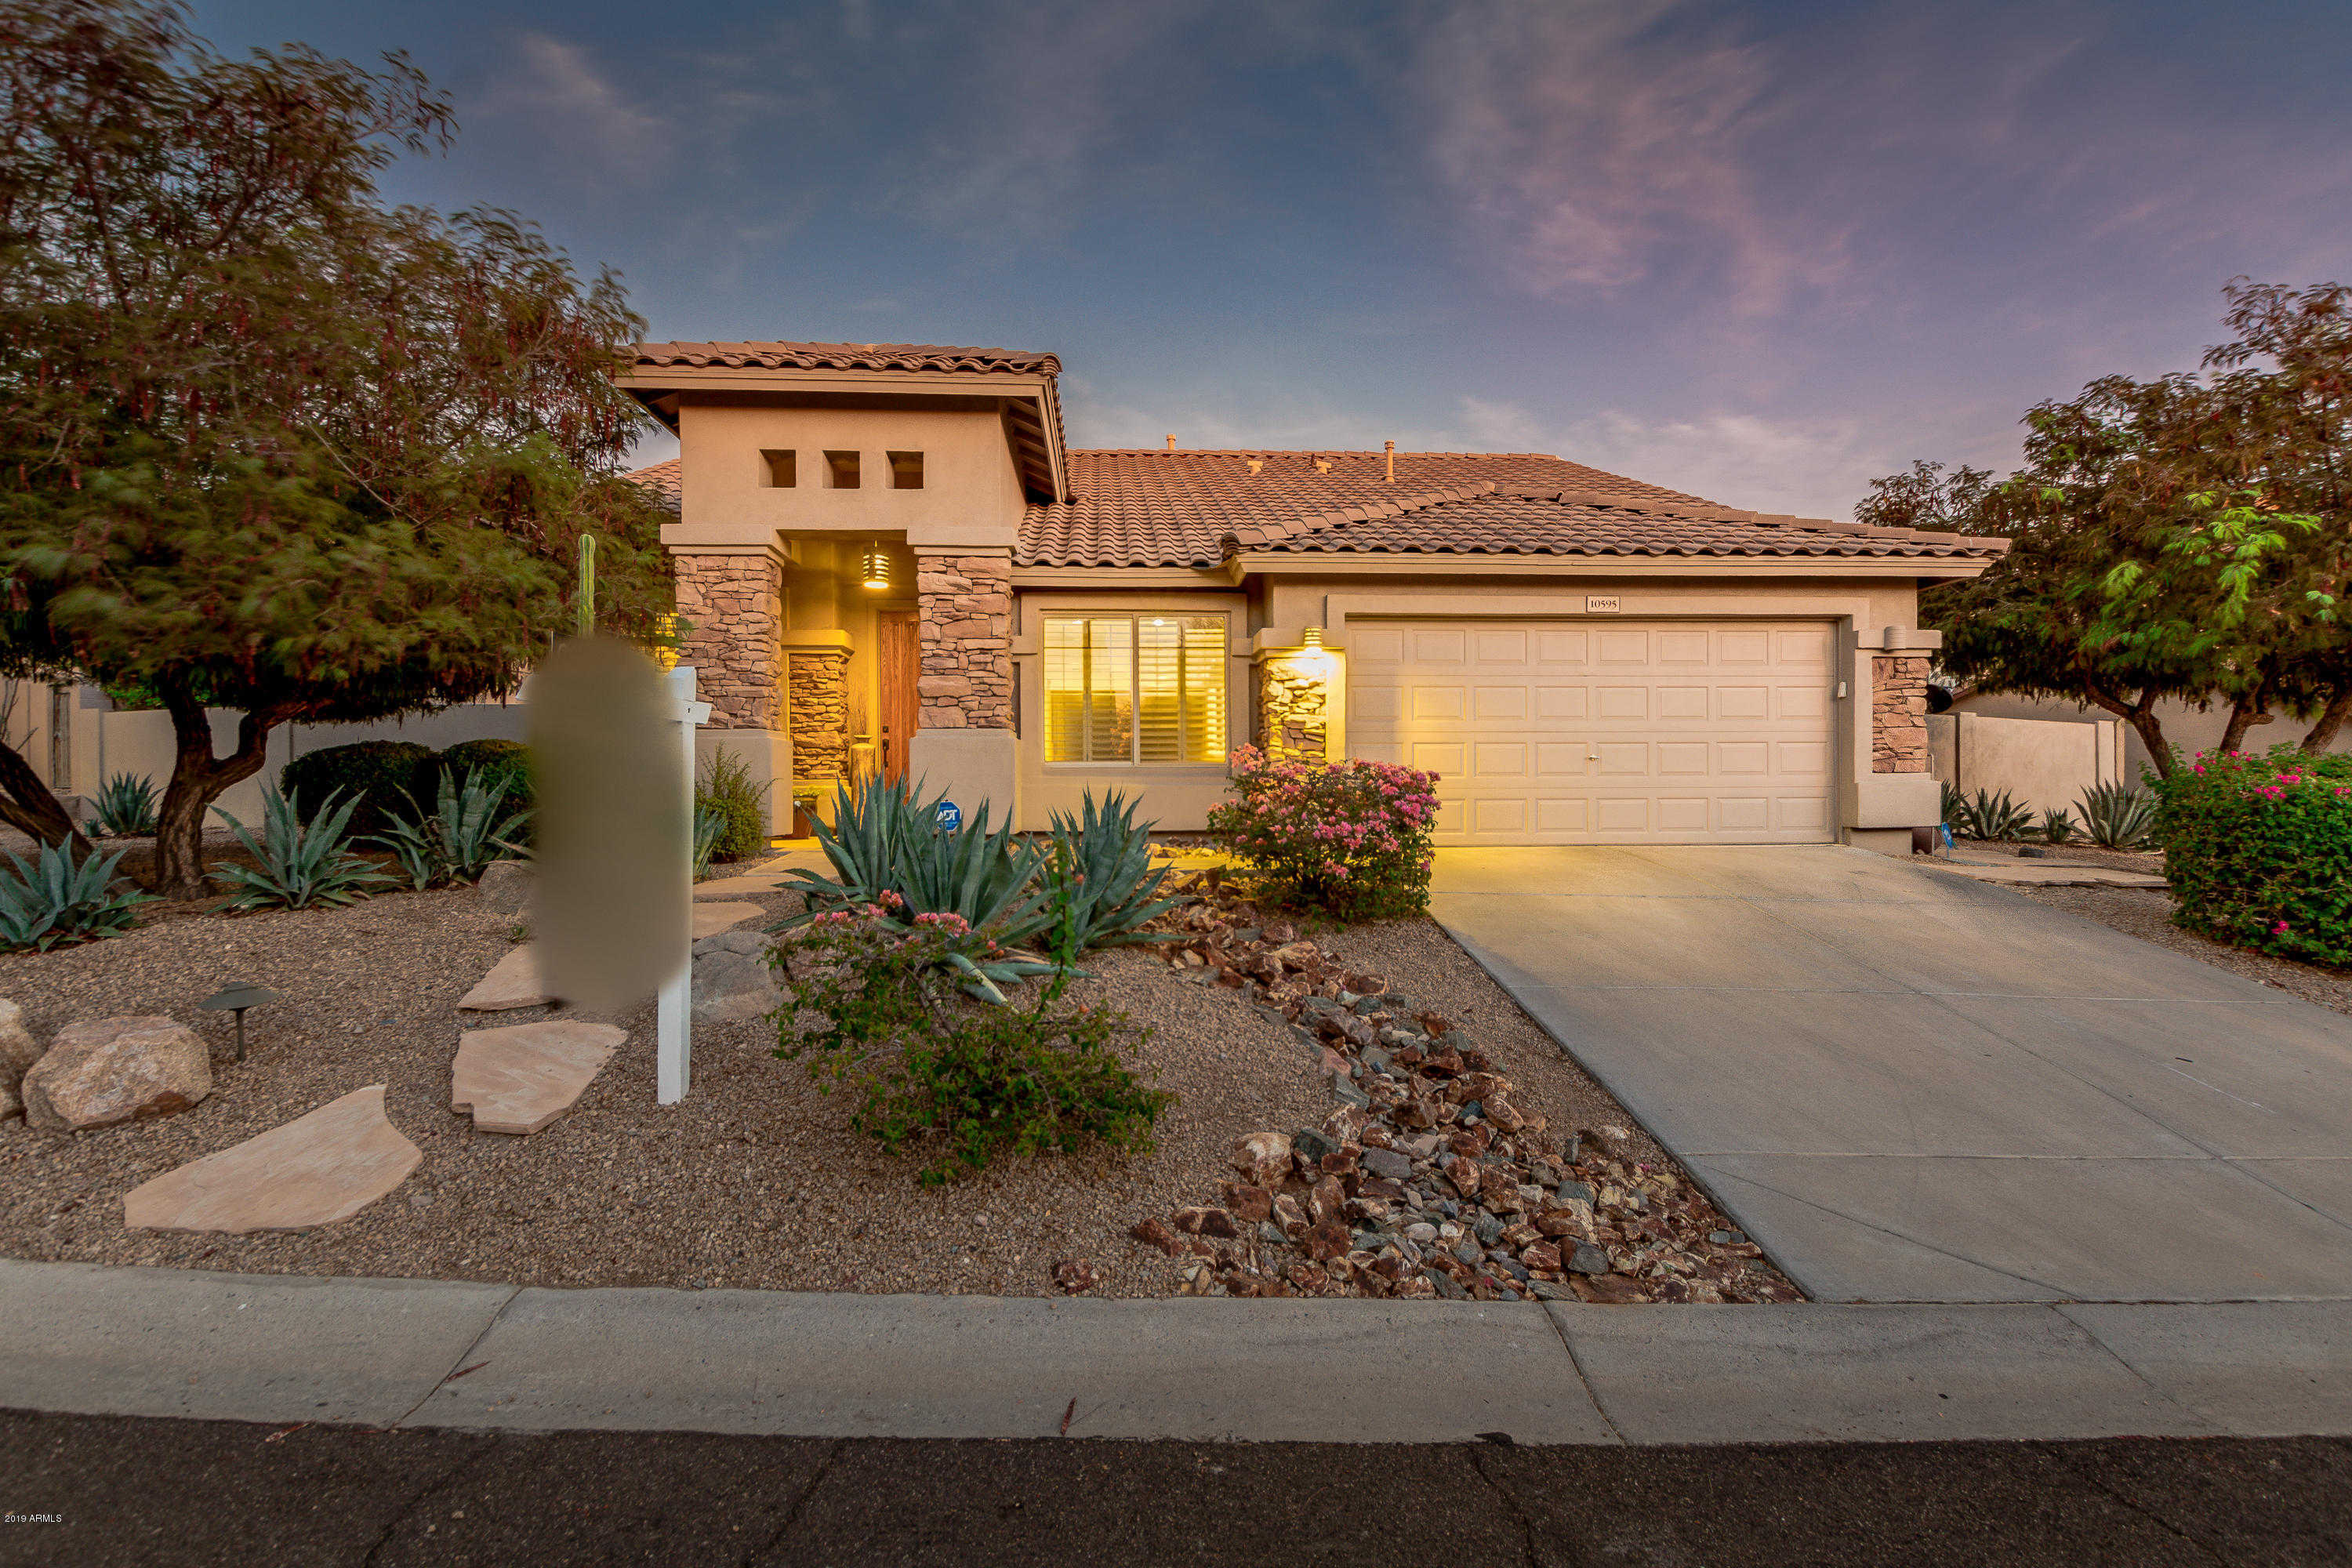 $619,999 - 4Br/2Ba - Home for Sale in Mcdowell Mountain Ranch Parcel F, Scottsdale